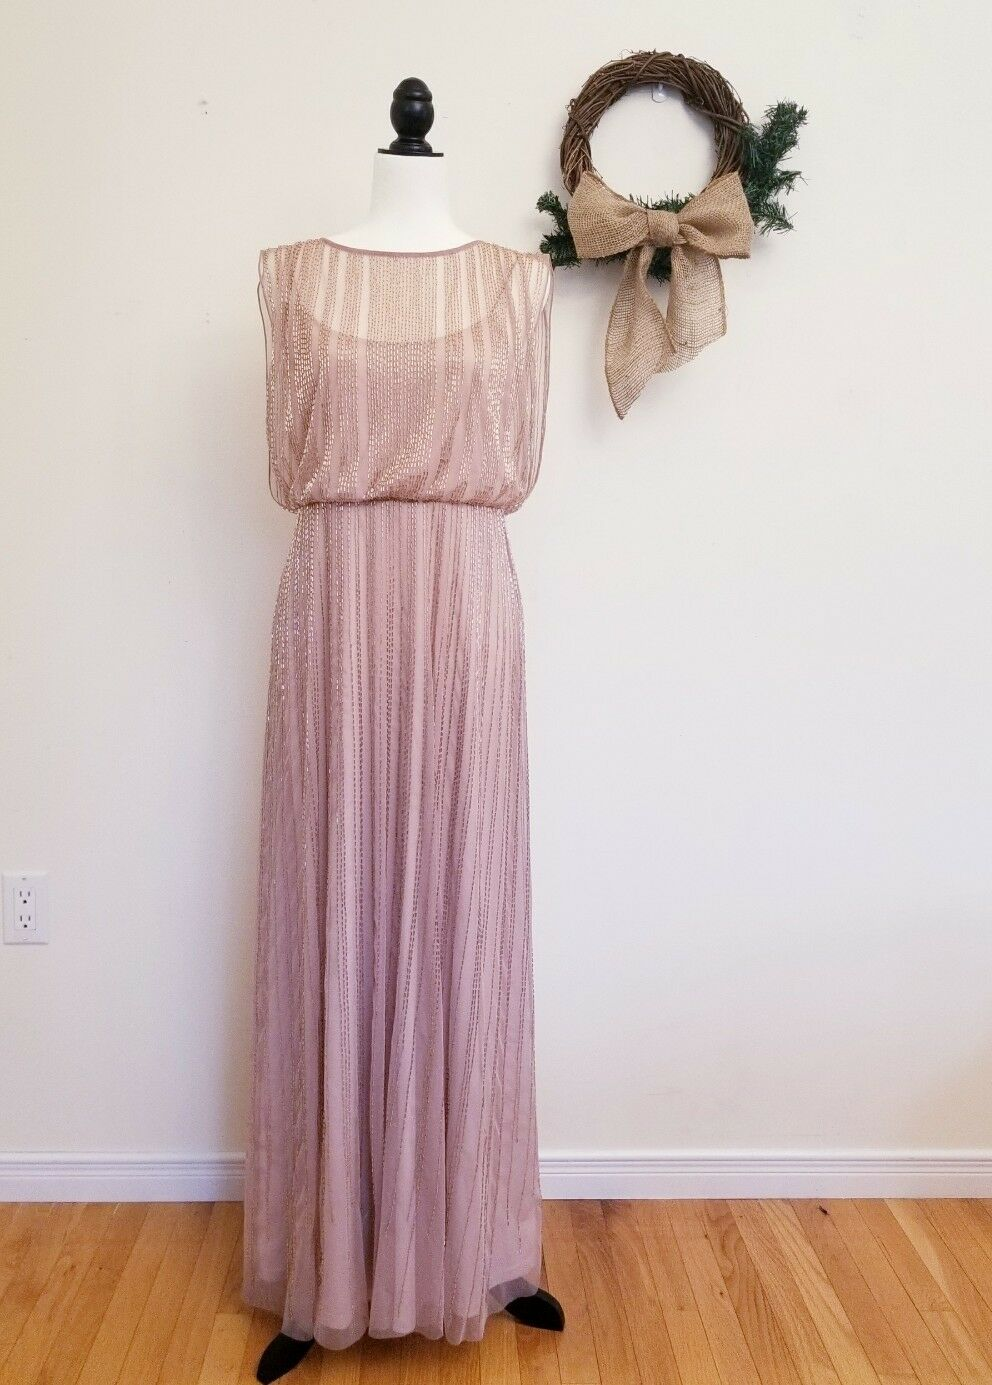 Adrianna Papell Beaded Boat Neck Cap Sleeve Blouson Gown 12P